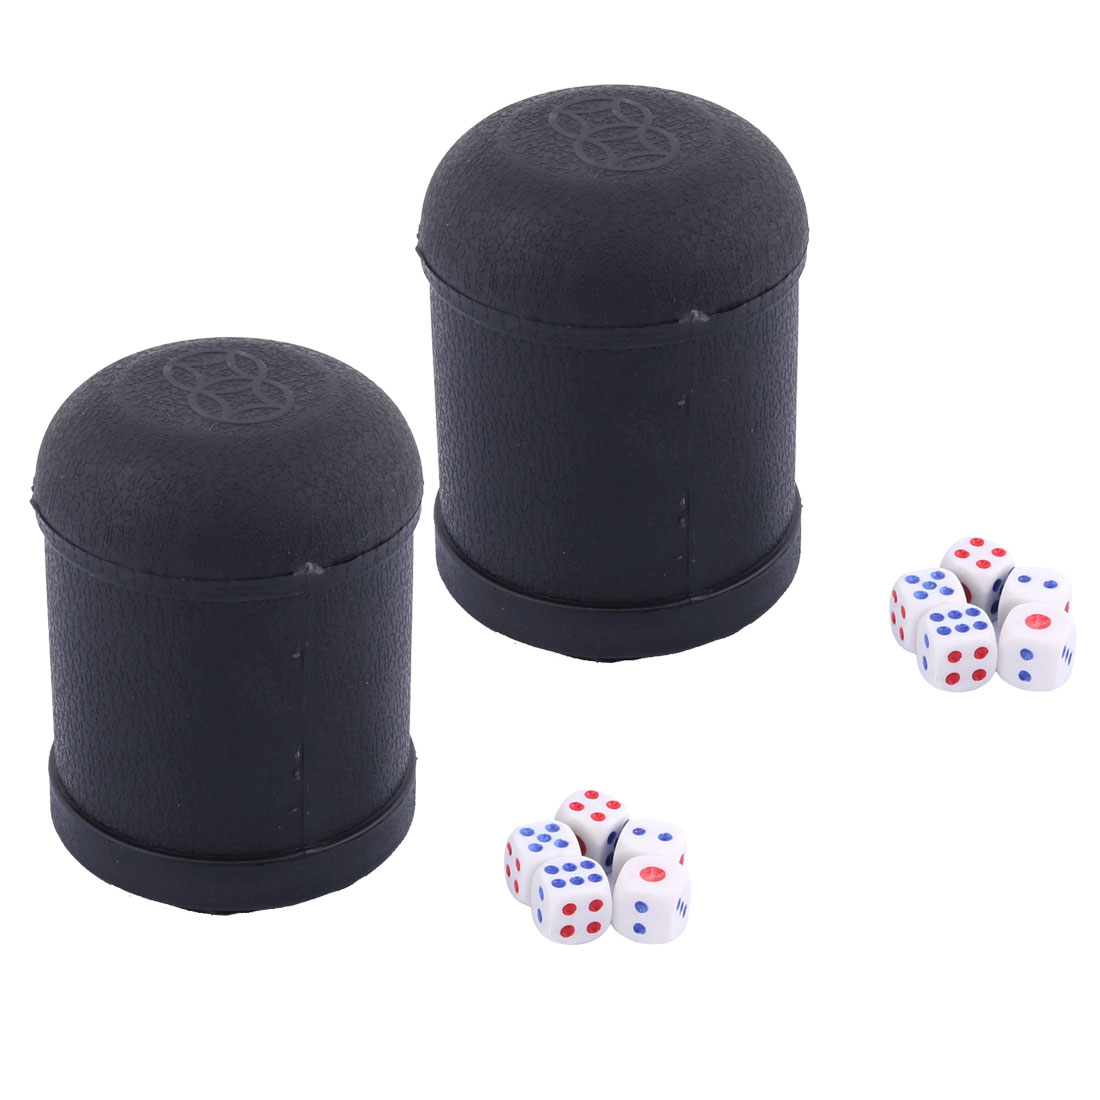 2 PCS KTV Pub Bar Party Casual Toy Plastic Round Shaker Cup Black w 10 Dices